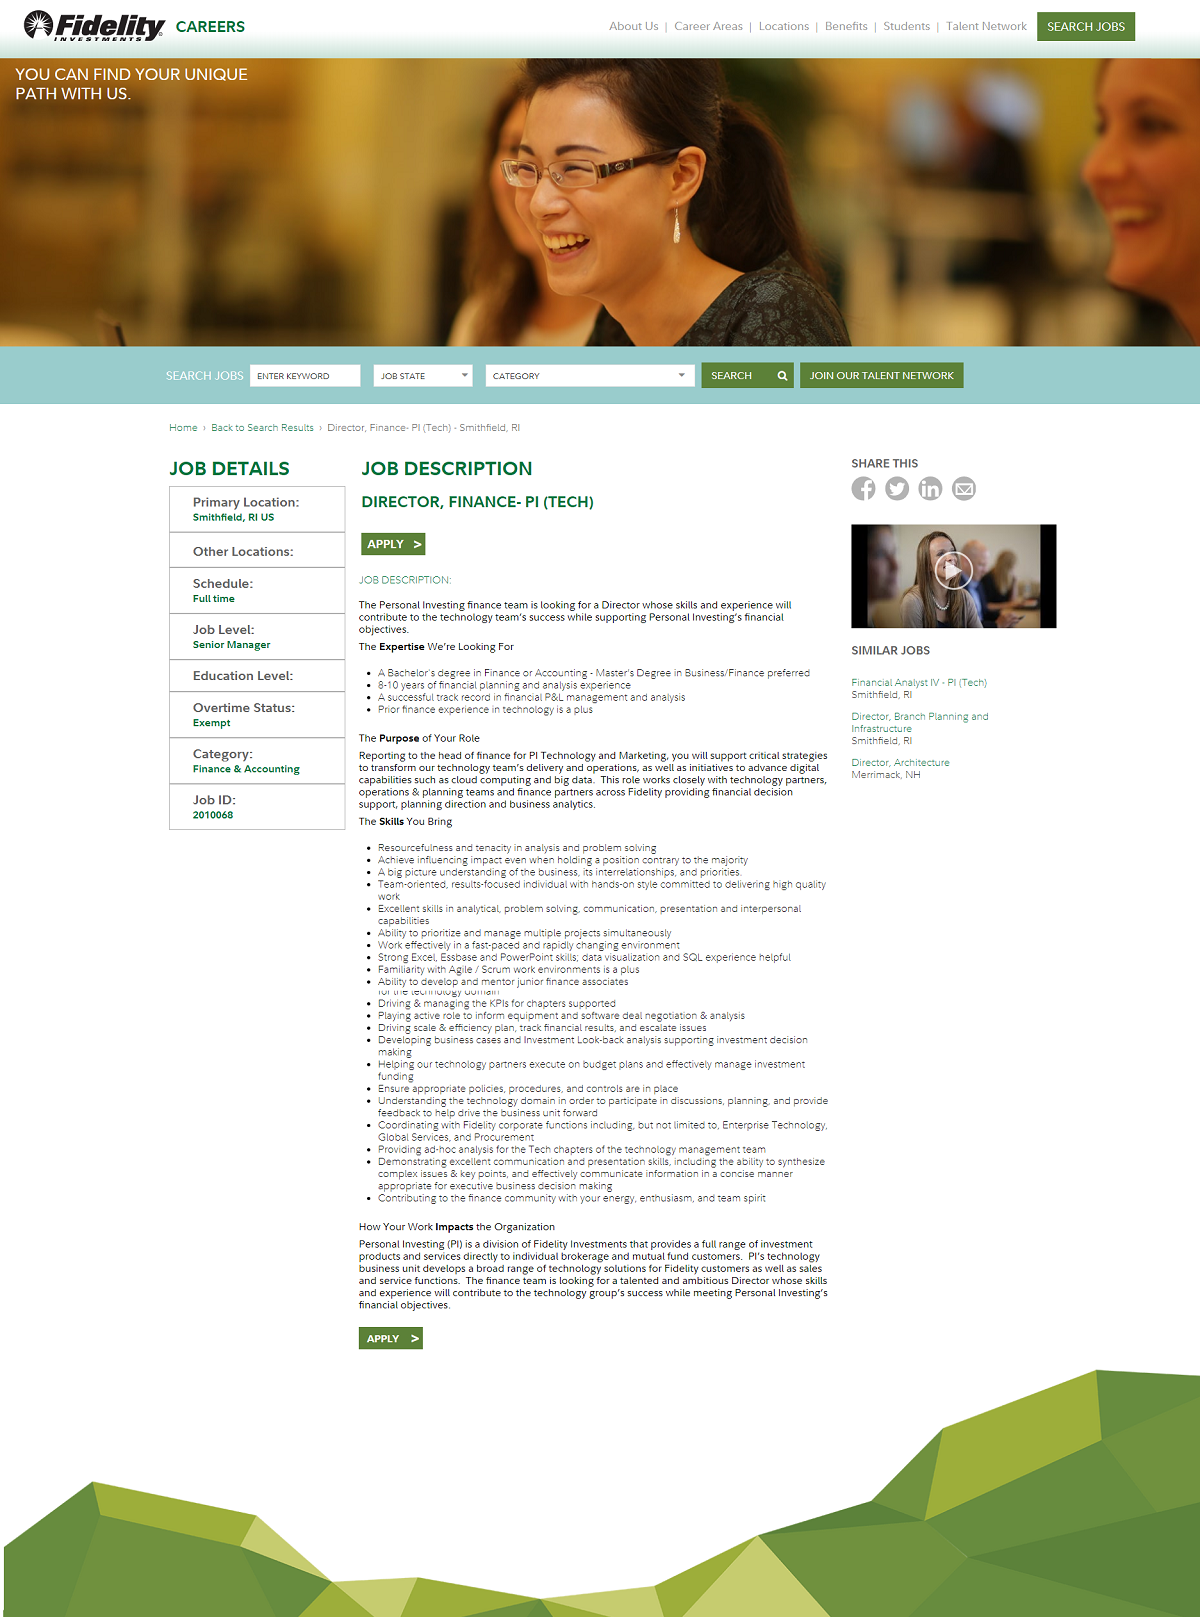 fidelity workday job page overlay